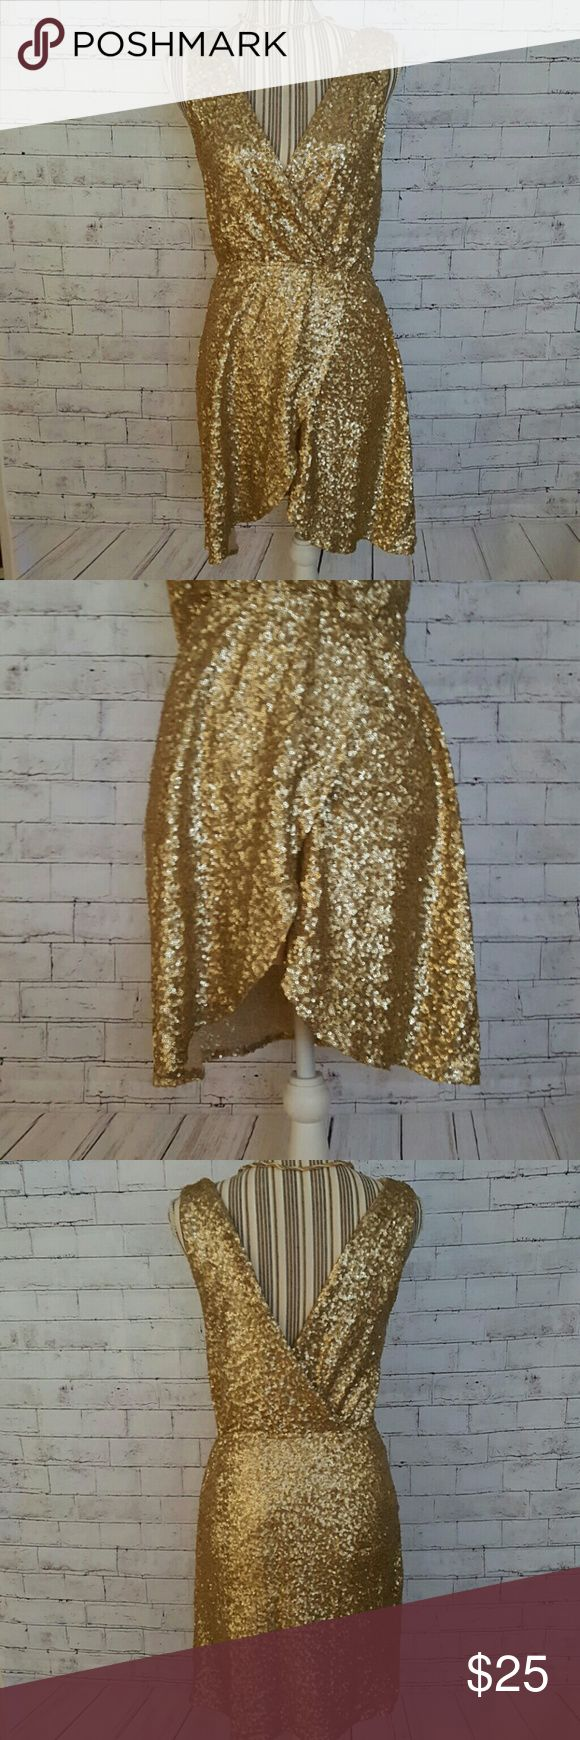 Sleeveless gold Sequin dress sleeveless gold Sequin dress, size medium with stretch and tulip wrap skirt. There's no tags on it at all but it's originally from asos. There's a small little coffee drop stain on the inside front I've shown in photos.    Sorry, I don't model but the mannequin is way hotter anyway. Necklace not included! ASOS Dresses Midi